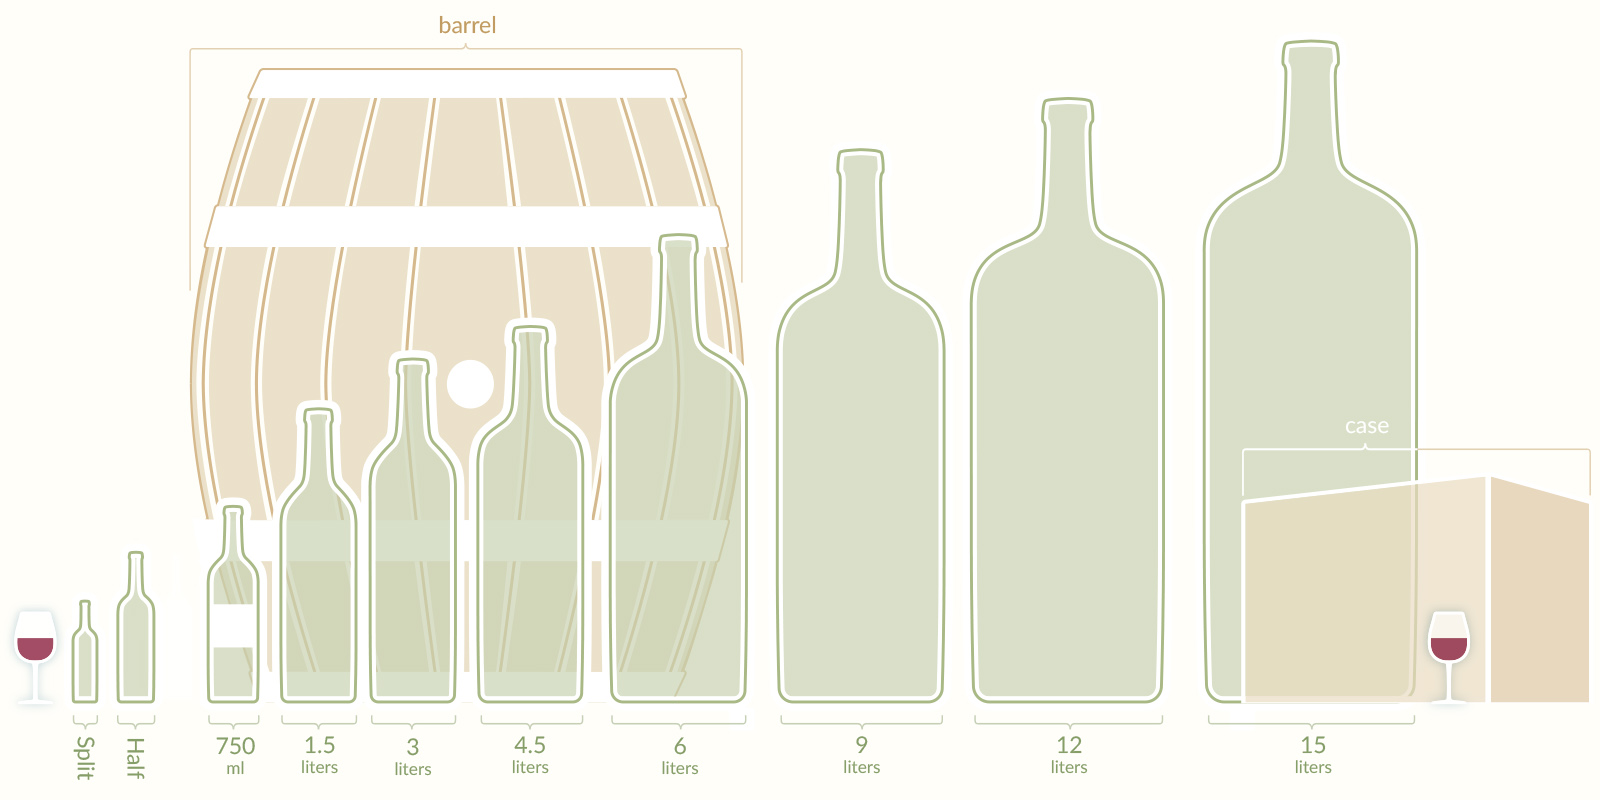 Wine bottle, barrel, case sizes graphic